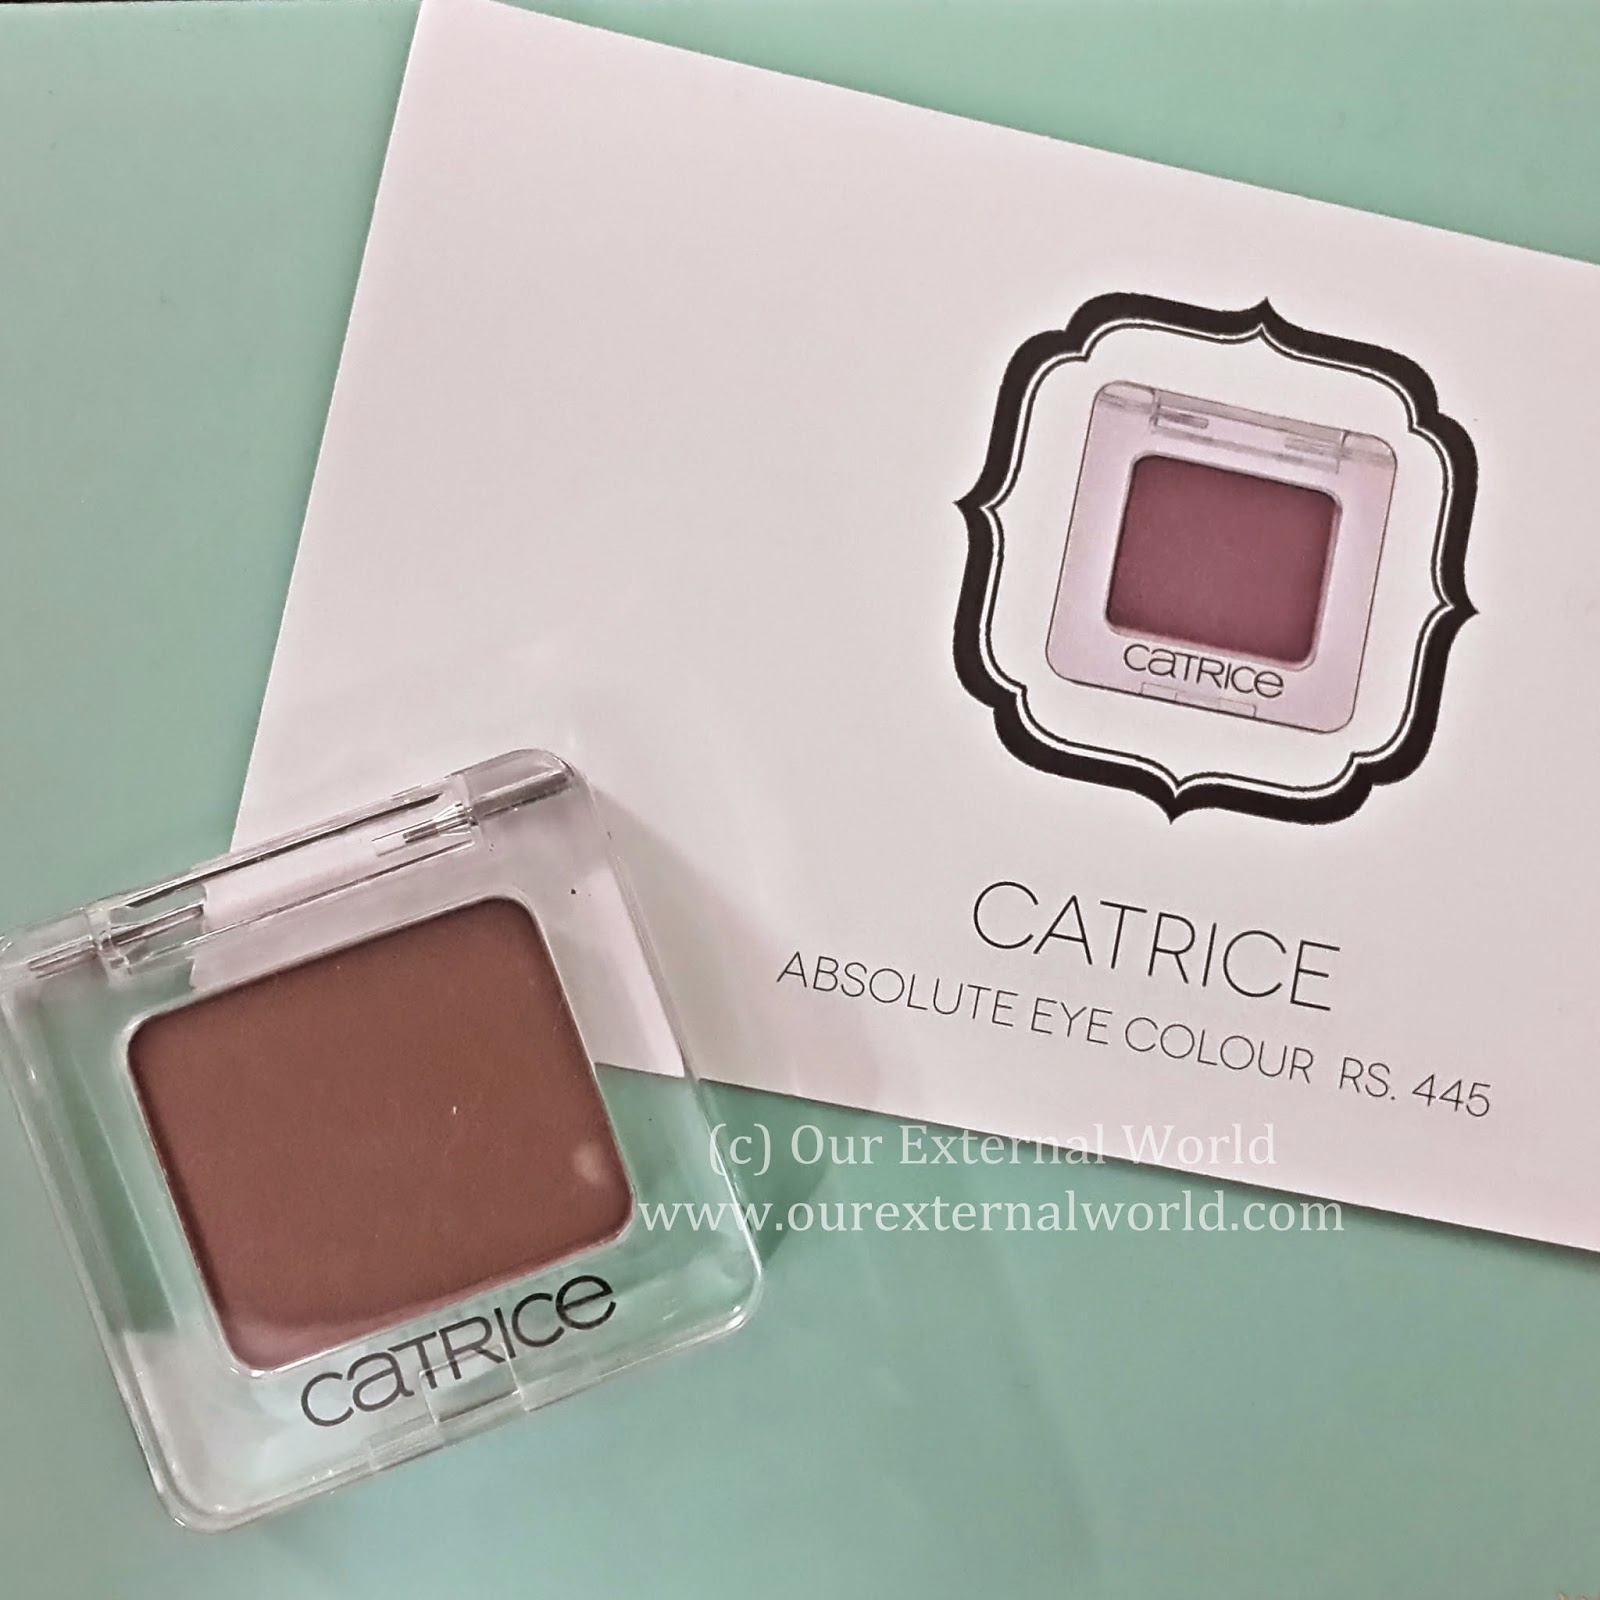 Unboxing: My Envy Box March 2015 Review, discount code, catrice, eye shadow